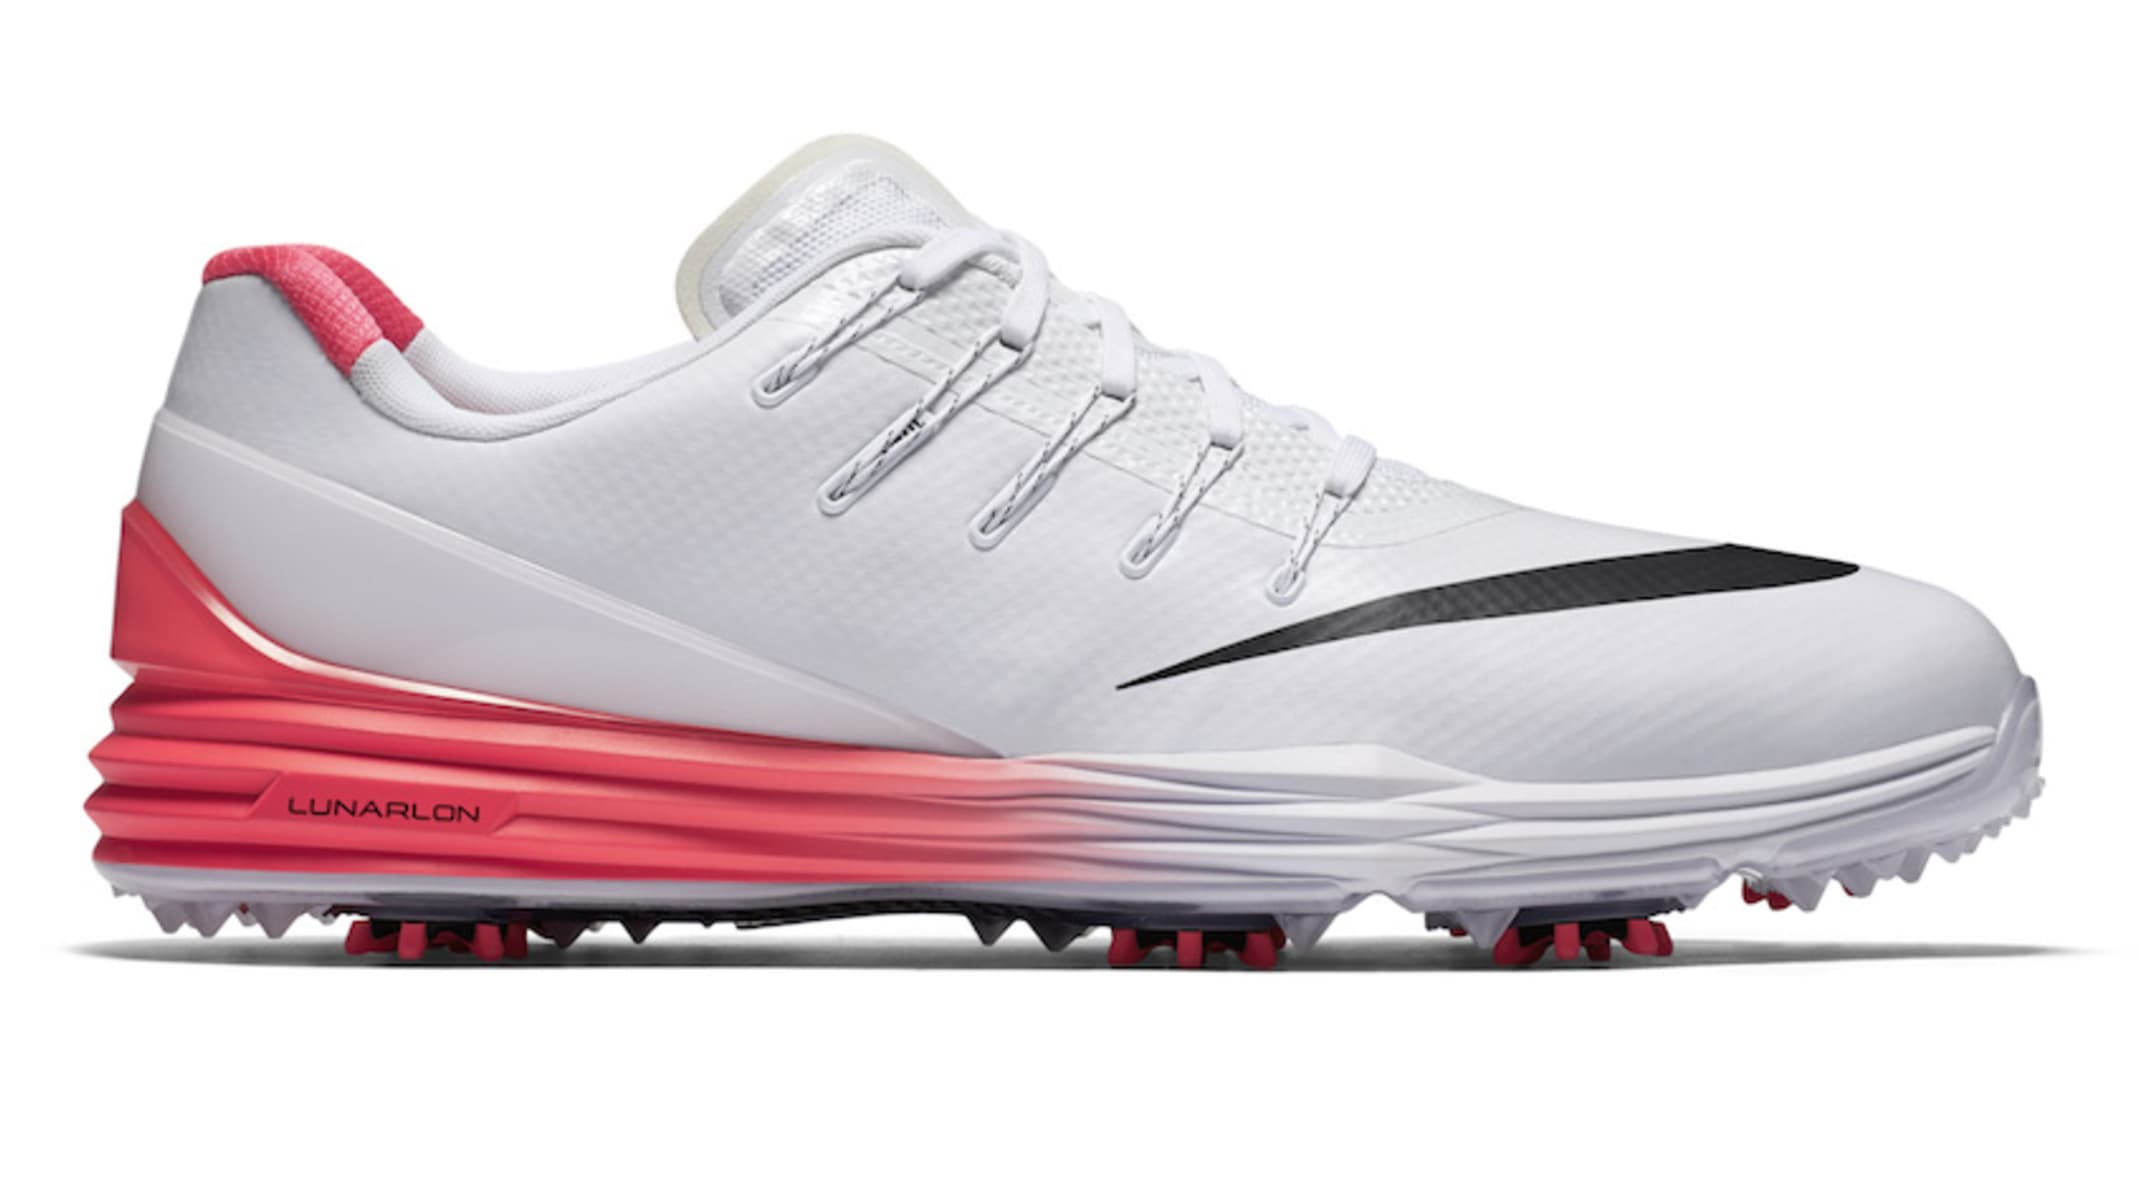 af545f89cc93f The new Nike shoe is geared to fit Rory McIlroy's aggressive golf swing. ( Nike